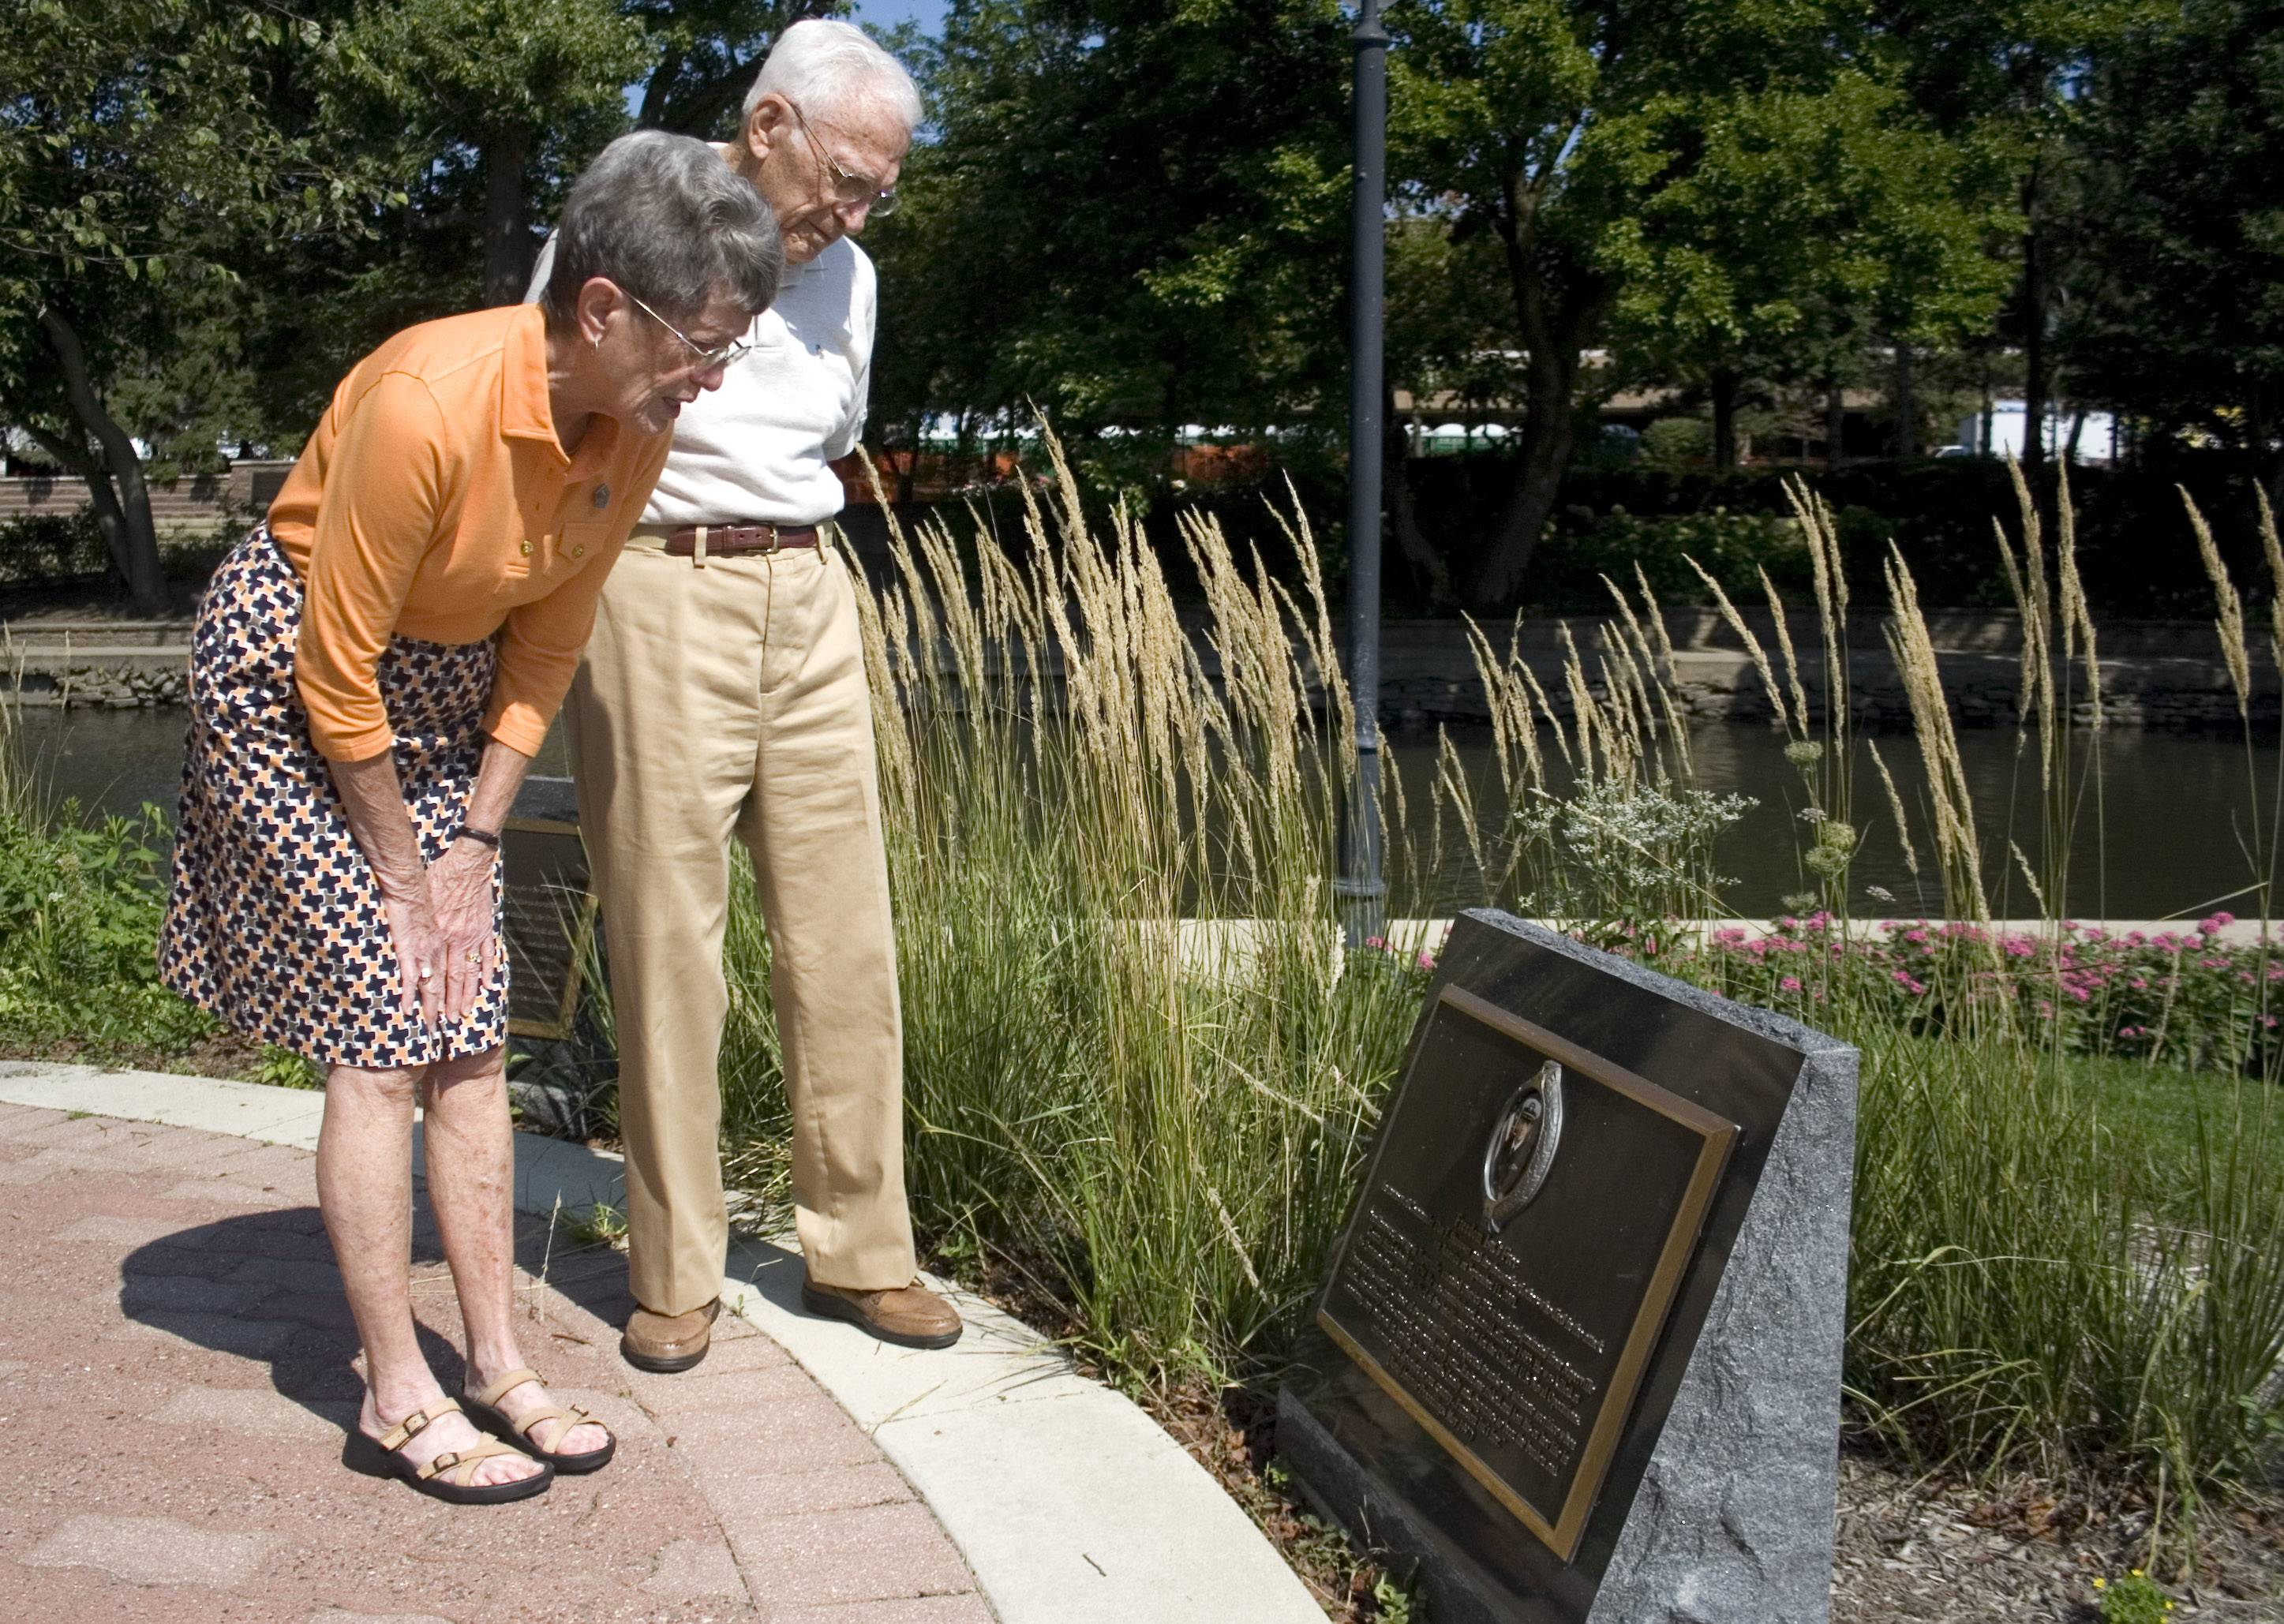 'Rough edges' gone, but loss remains for Naperville Sept. 11 victim's mother